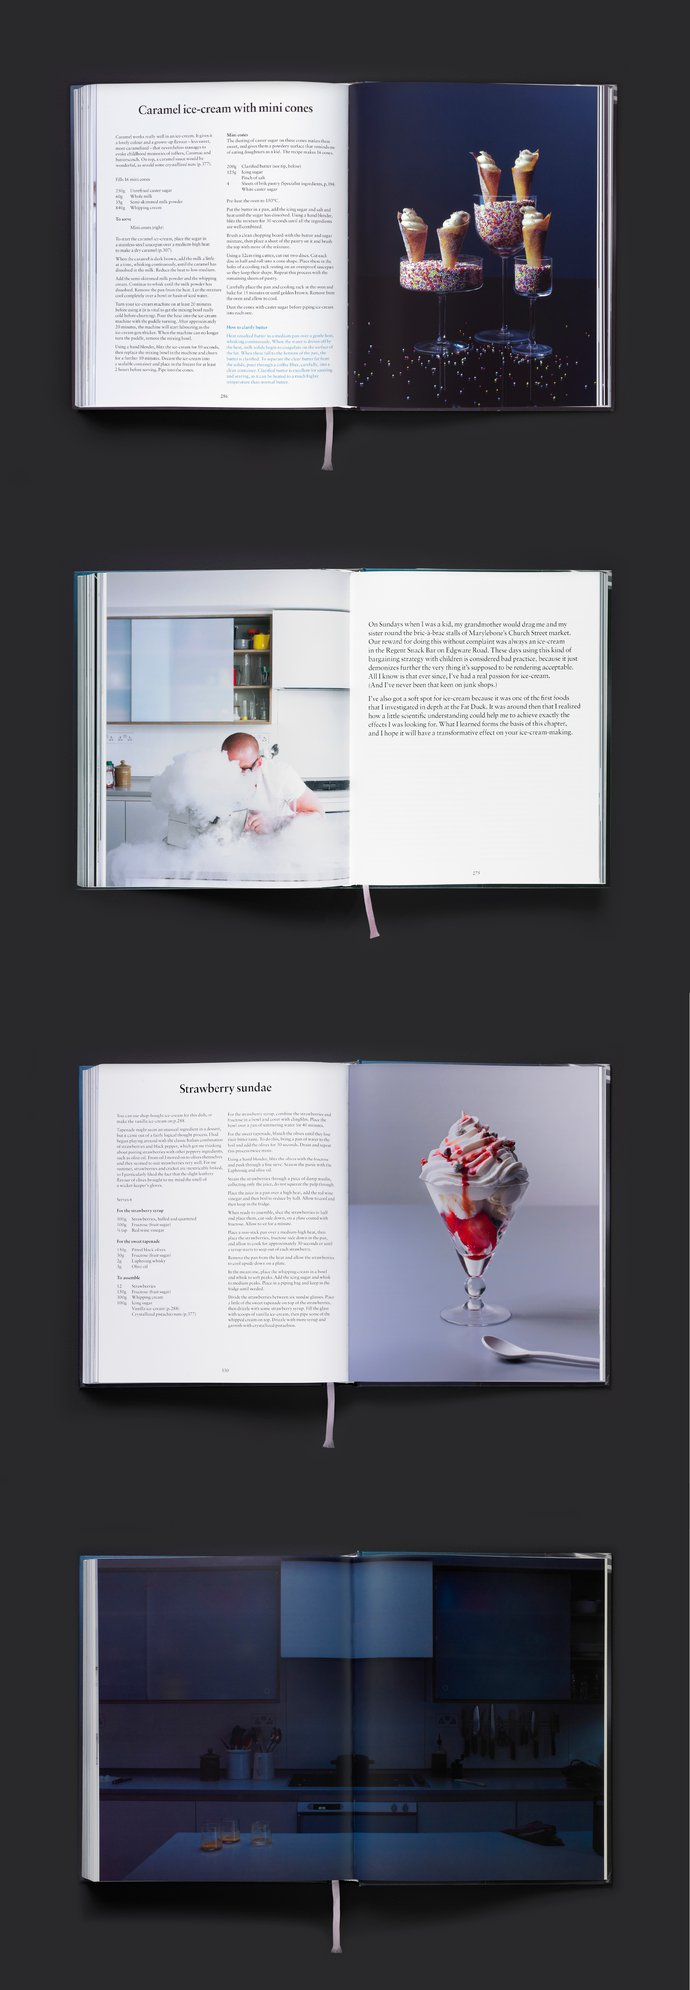 Bloomsbury – Heston Blumenthal at Home, 2011 (Publication), image 10